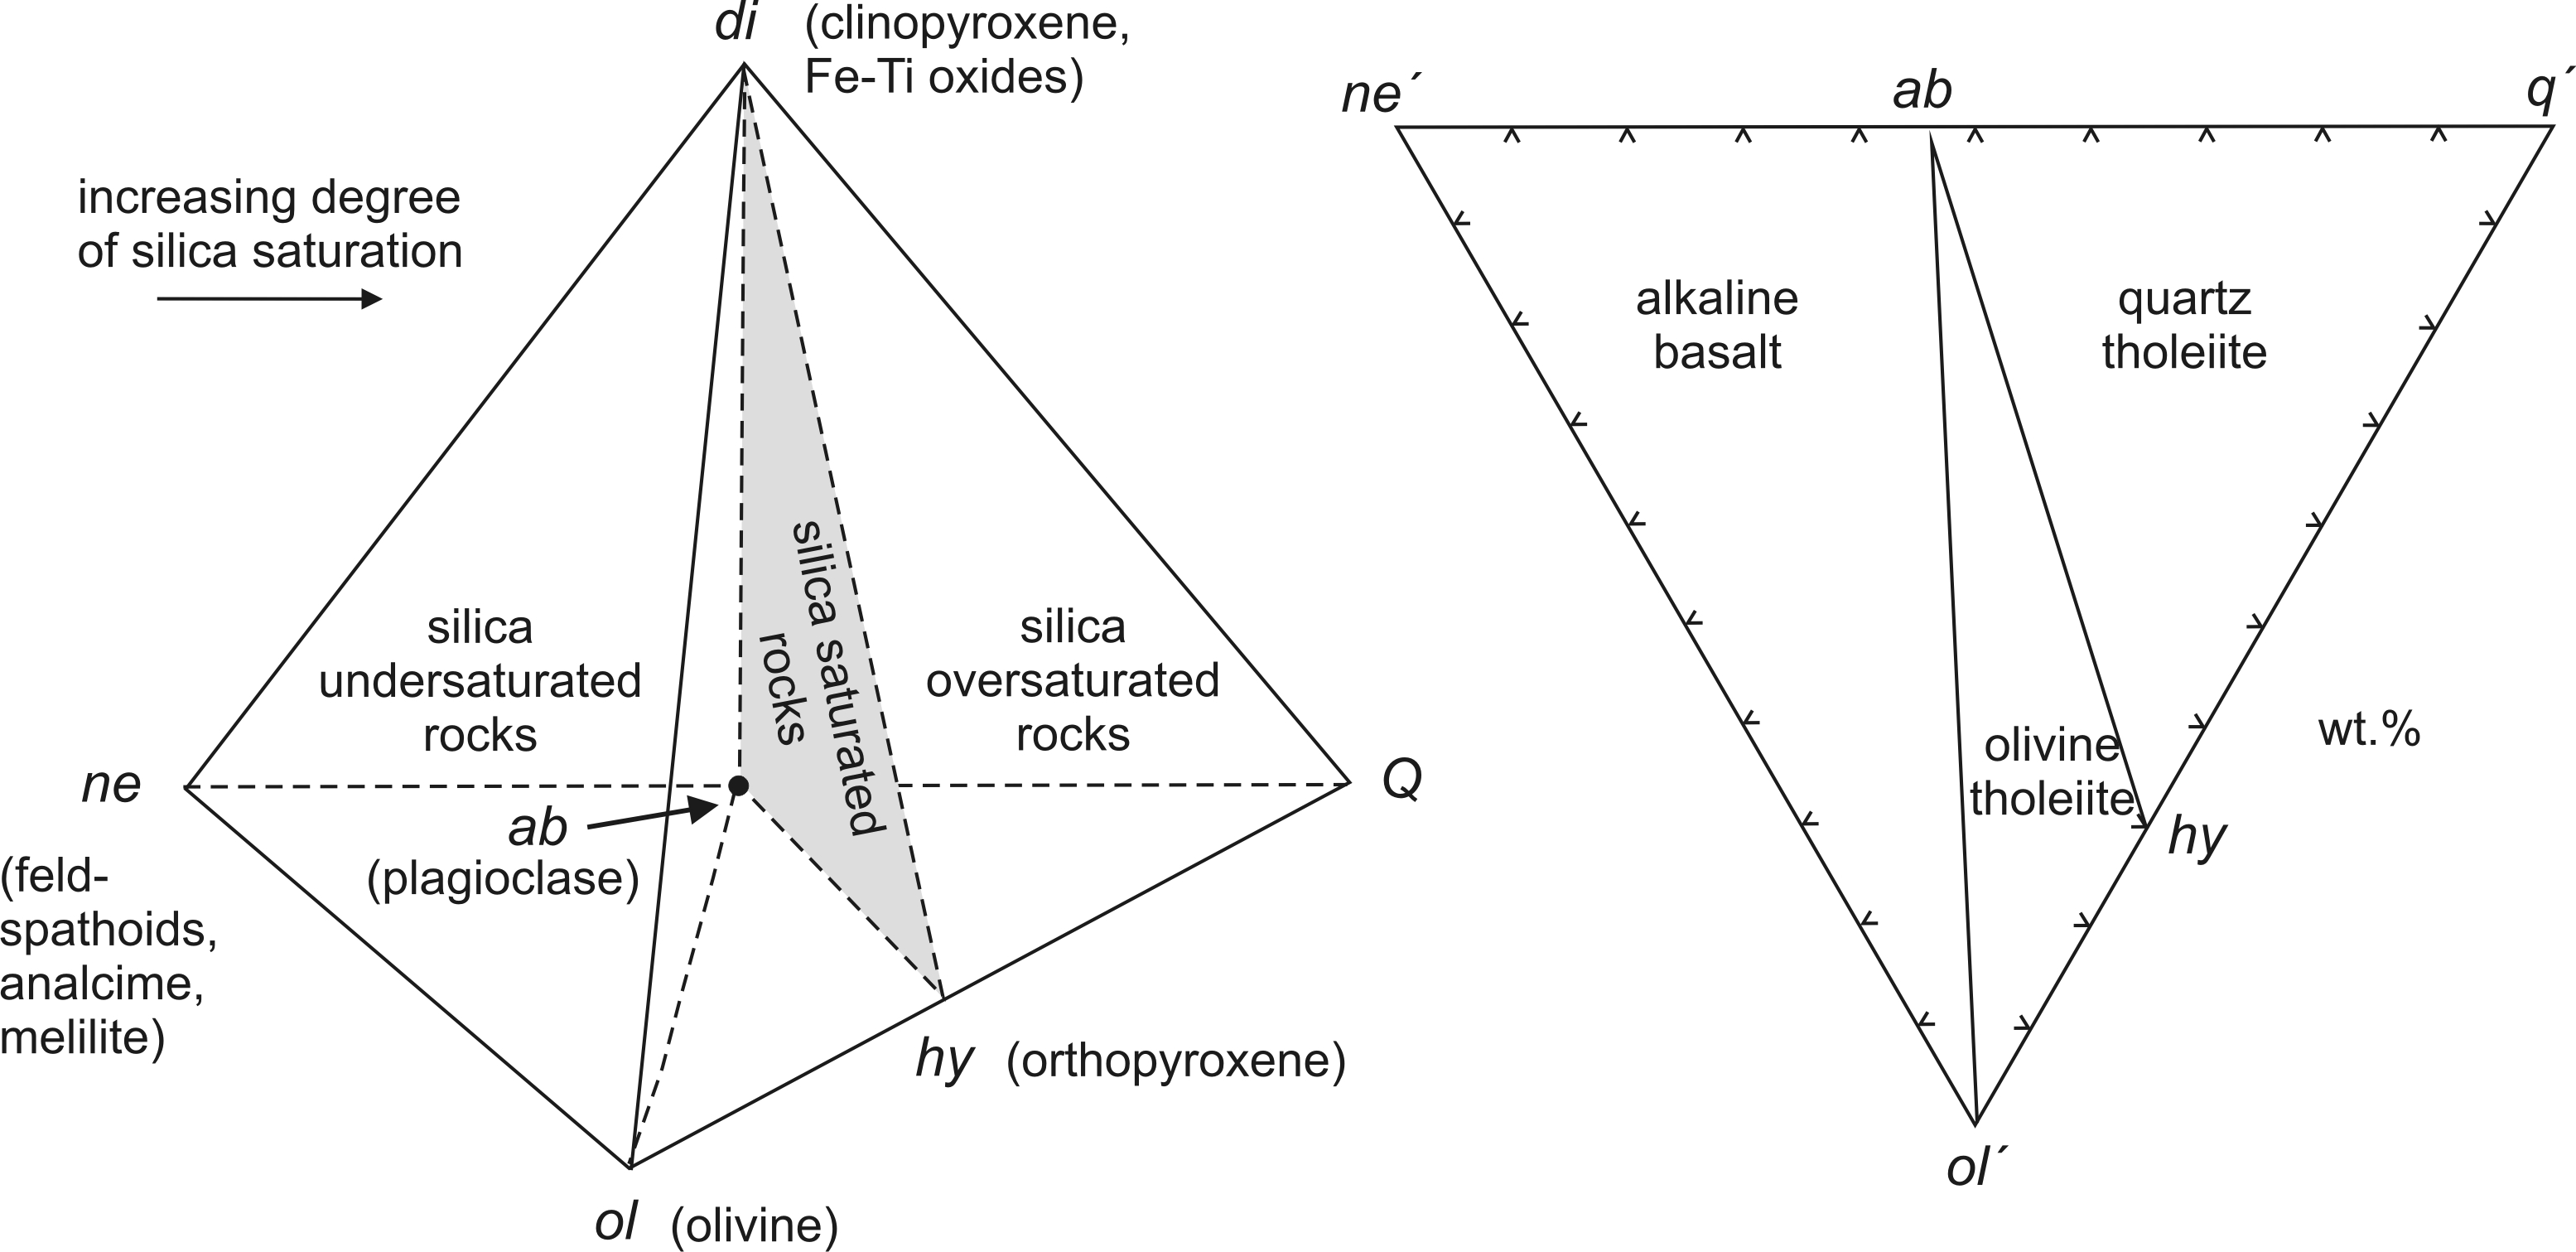 atlas of magmatic rocks classification of basaltic rocks according to sio2 saturation degree left basalt tetrahedron yoder and tilley 1962 basaltic rocks having various